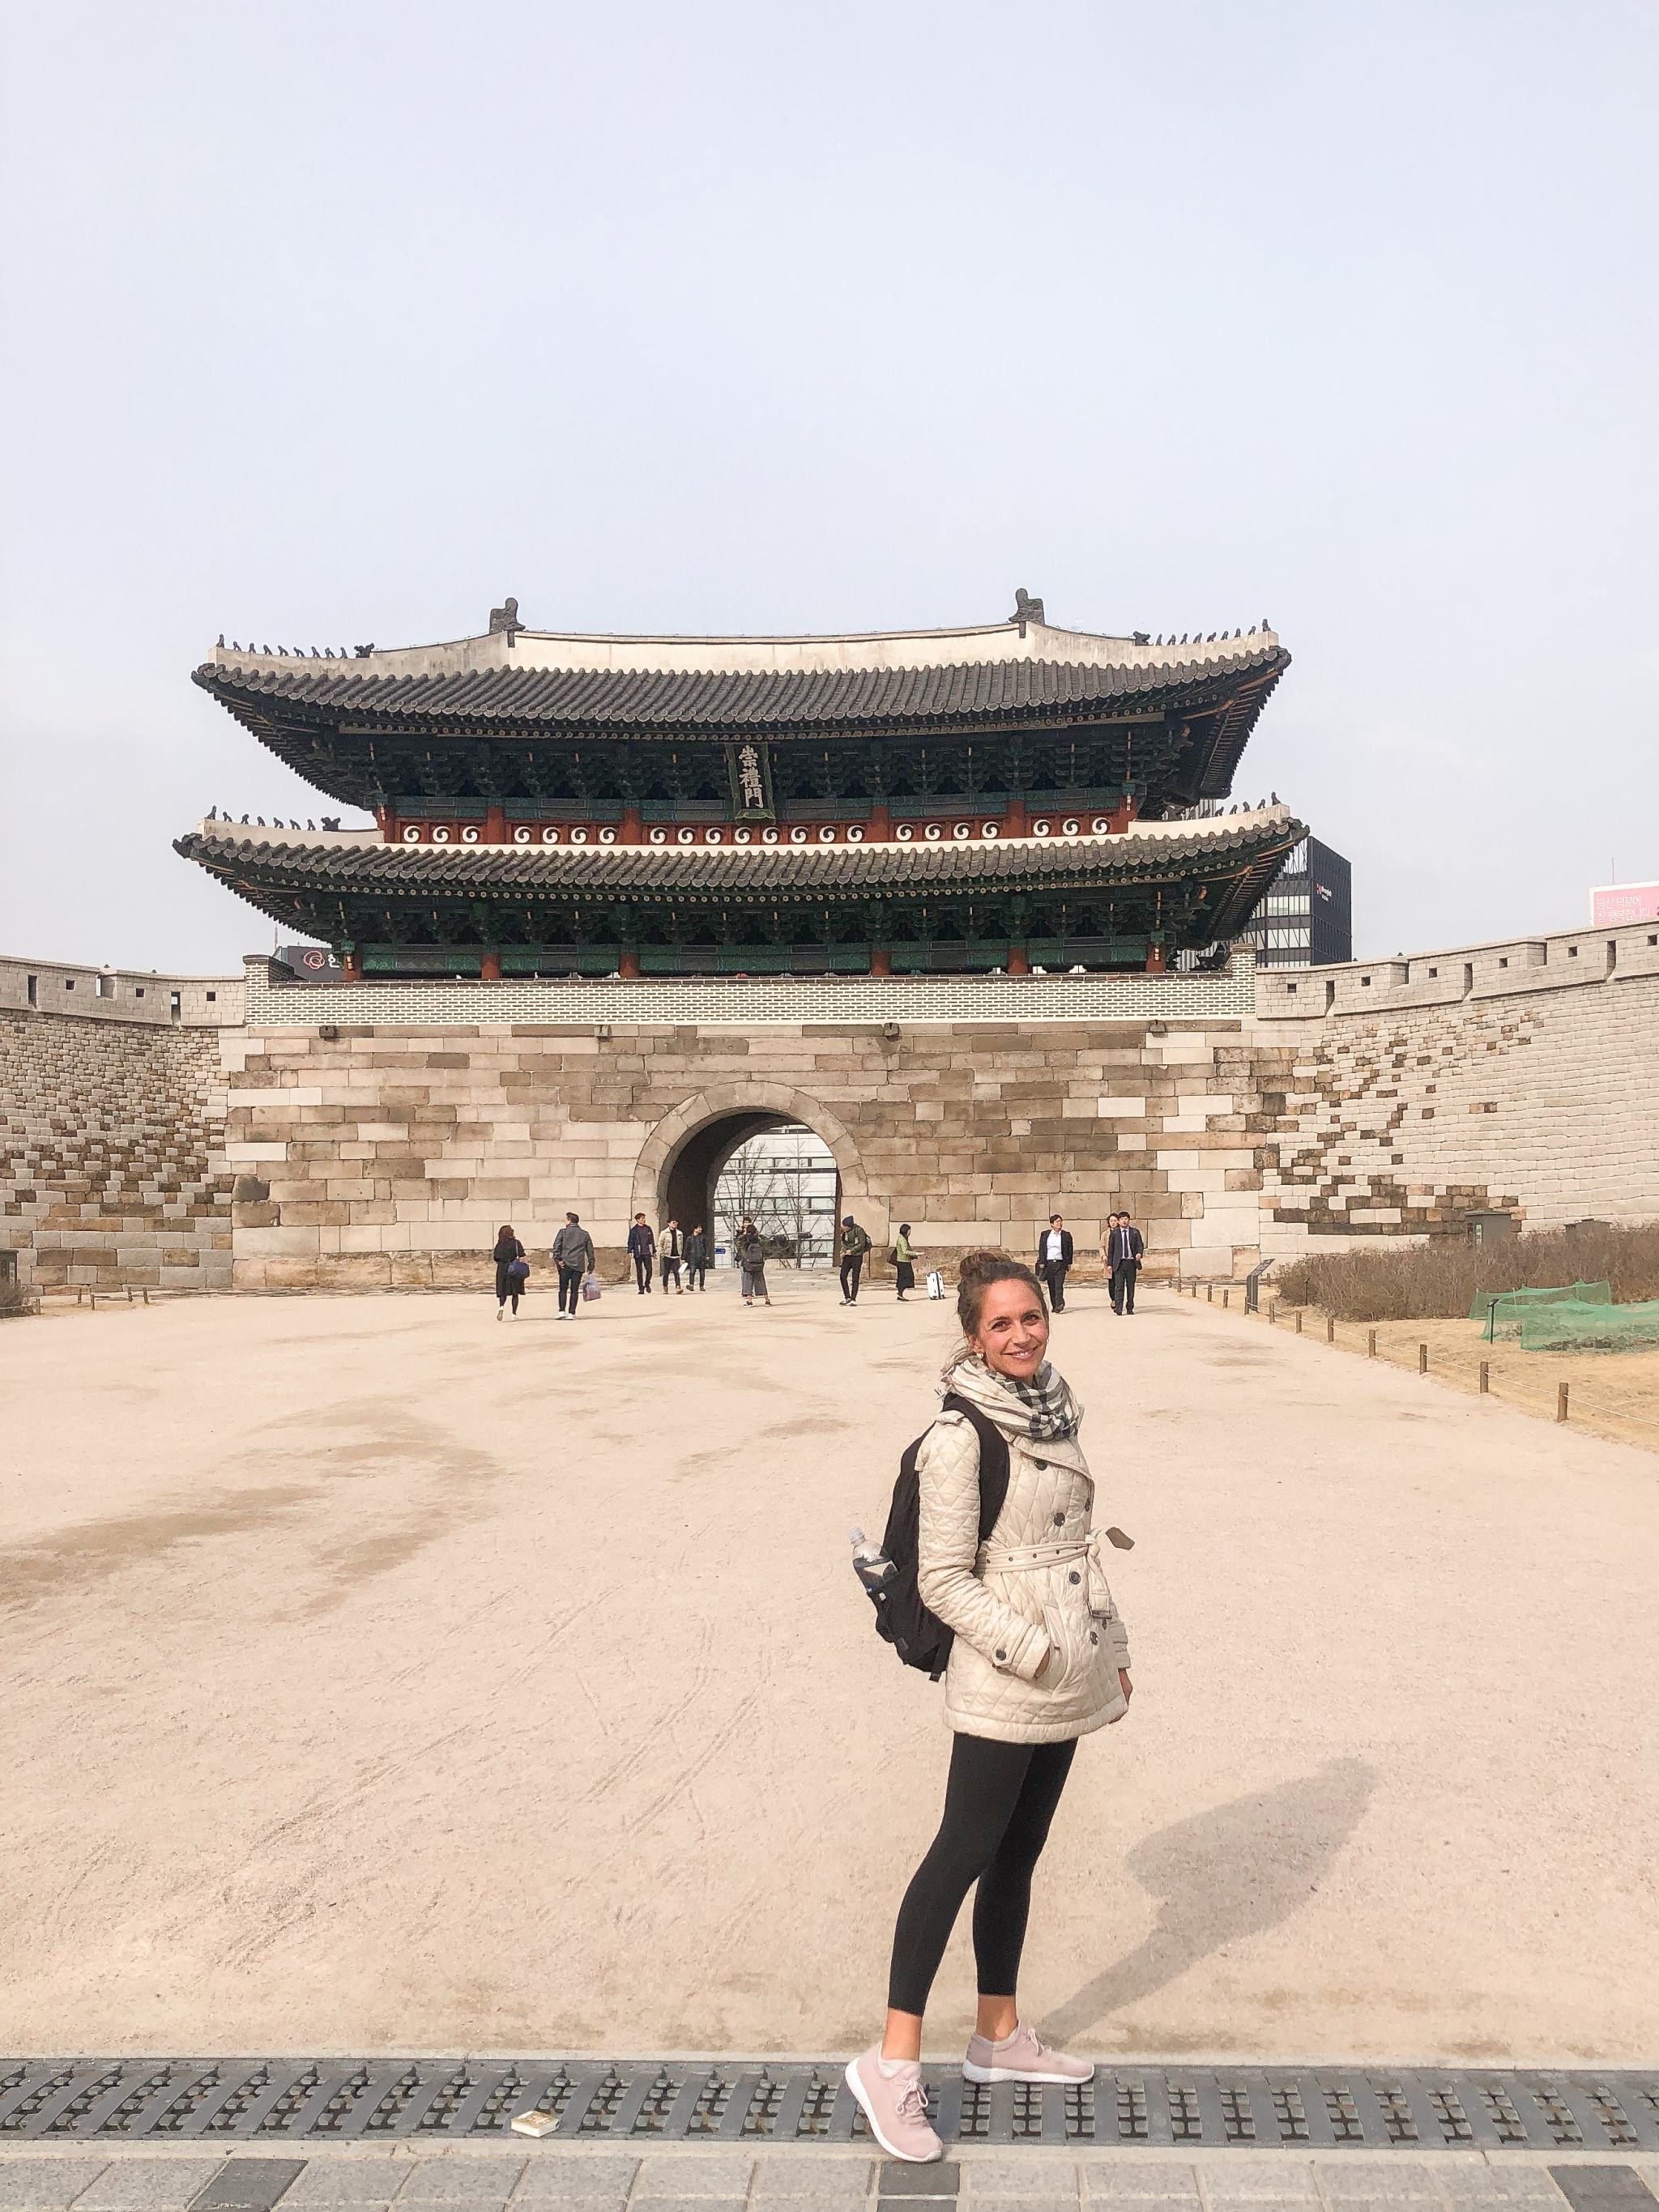 - things to do near Yongsan - things to do in Seoul - things to see in Seoul - traveling in Seoul Korea - traveling in Korea - Seoul Gate - Sungnyemun Gate